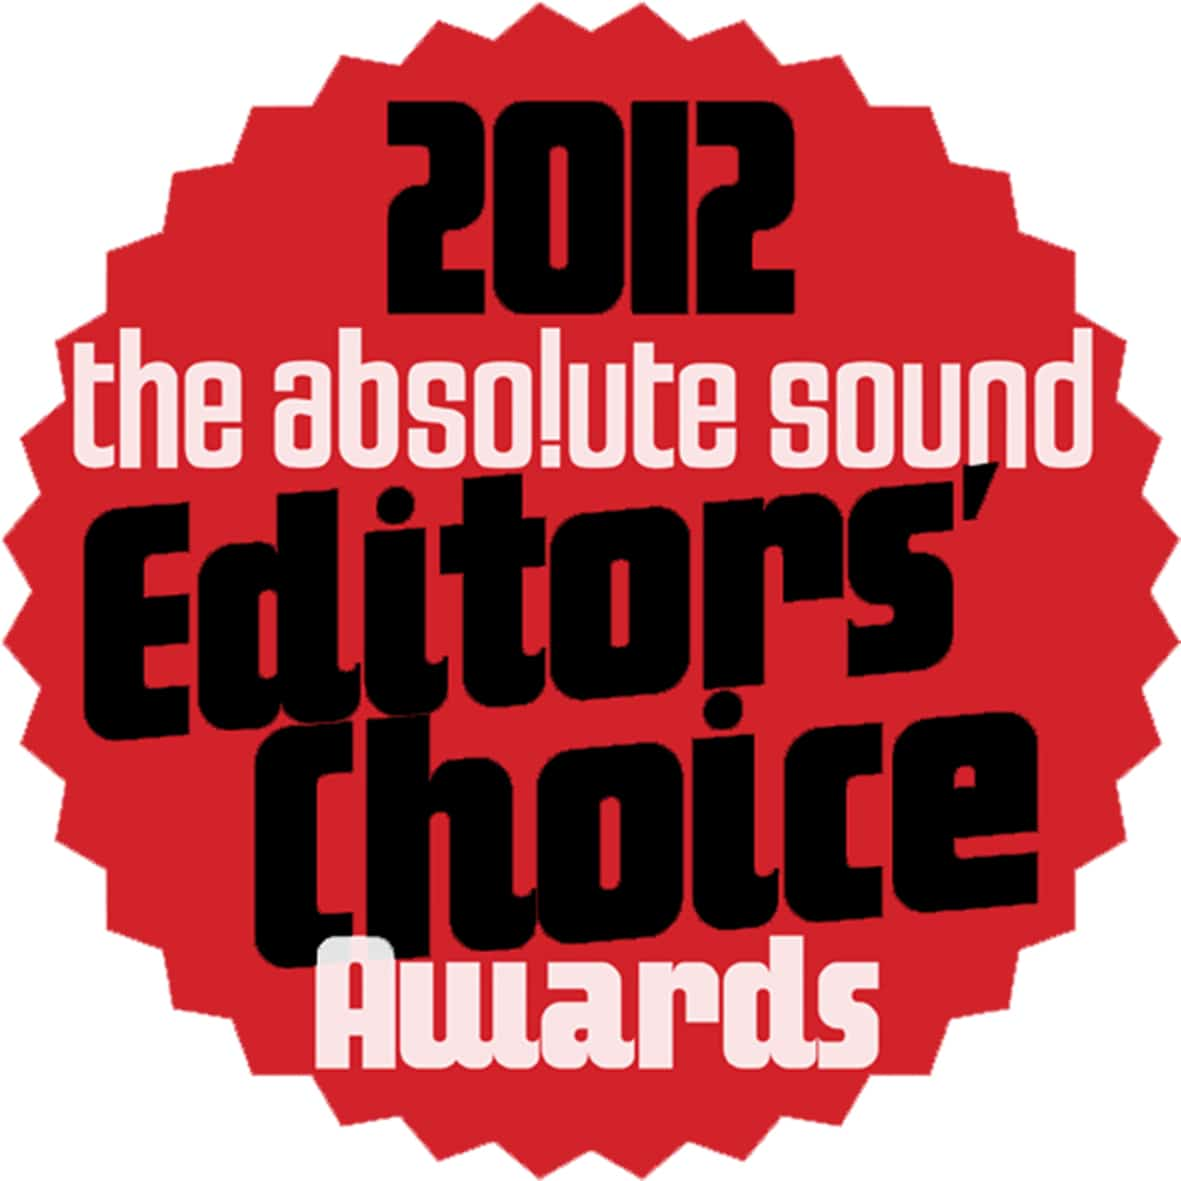 Editors choice for S-15